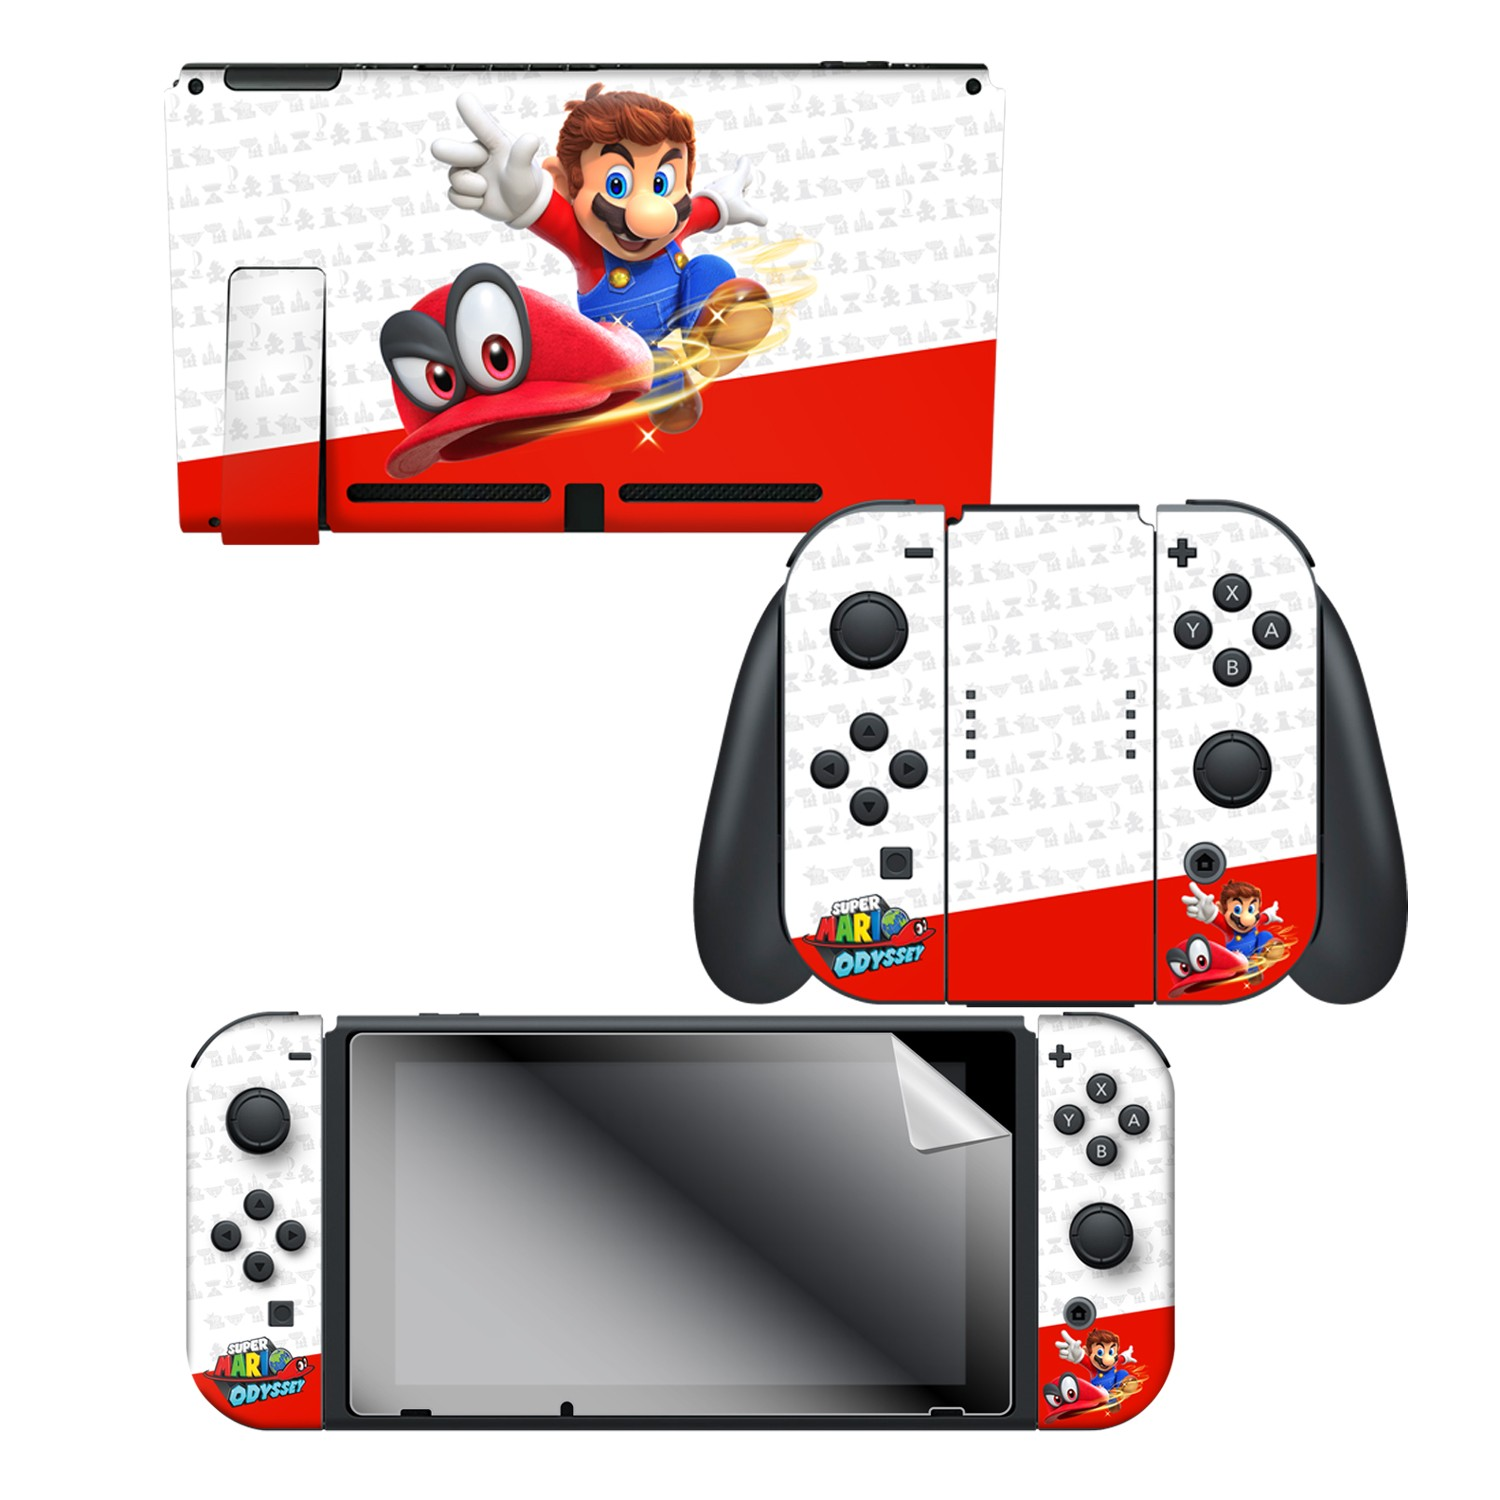 Super Mario Odyssey Odyssey Nintendo Switch Console Skin Joy Con Skin Joy Con Grip Skin Screen Protector Bundle Assortment Officially